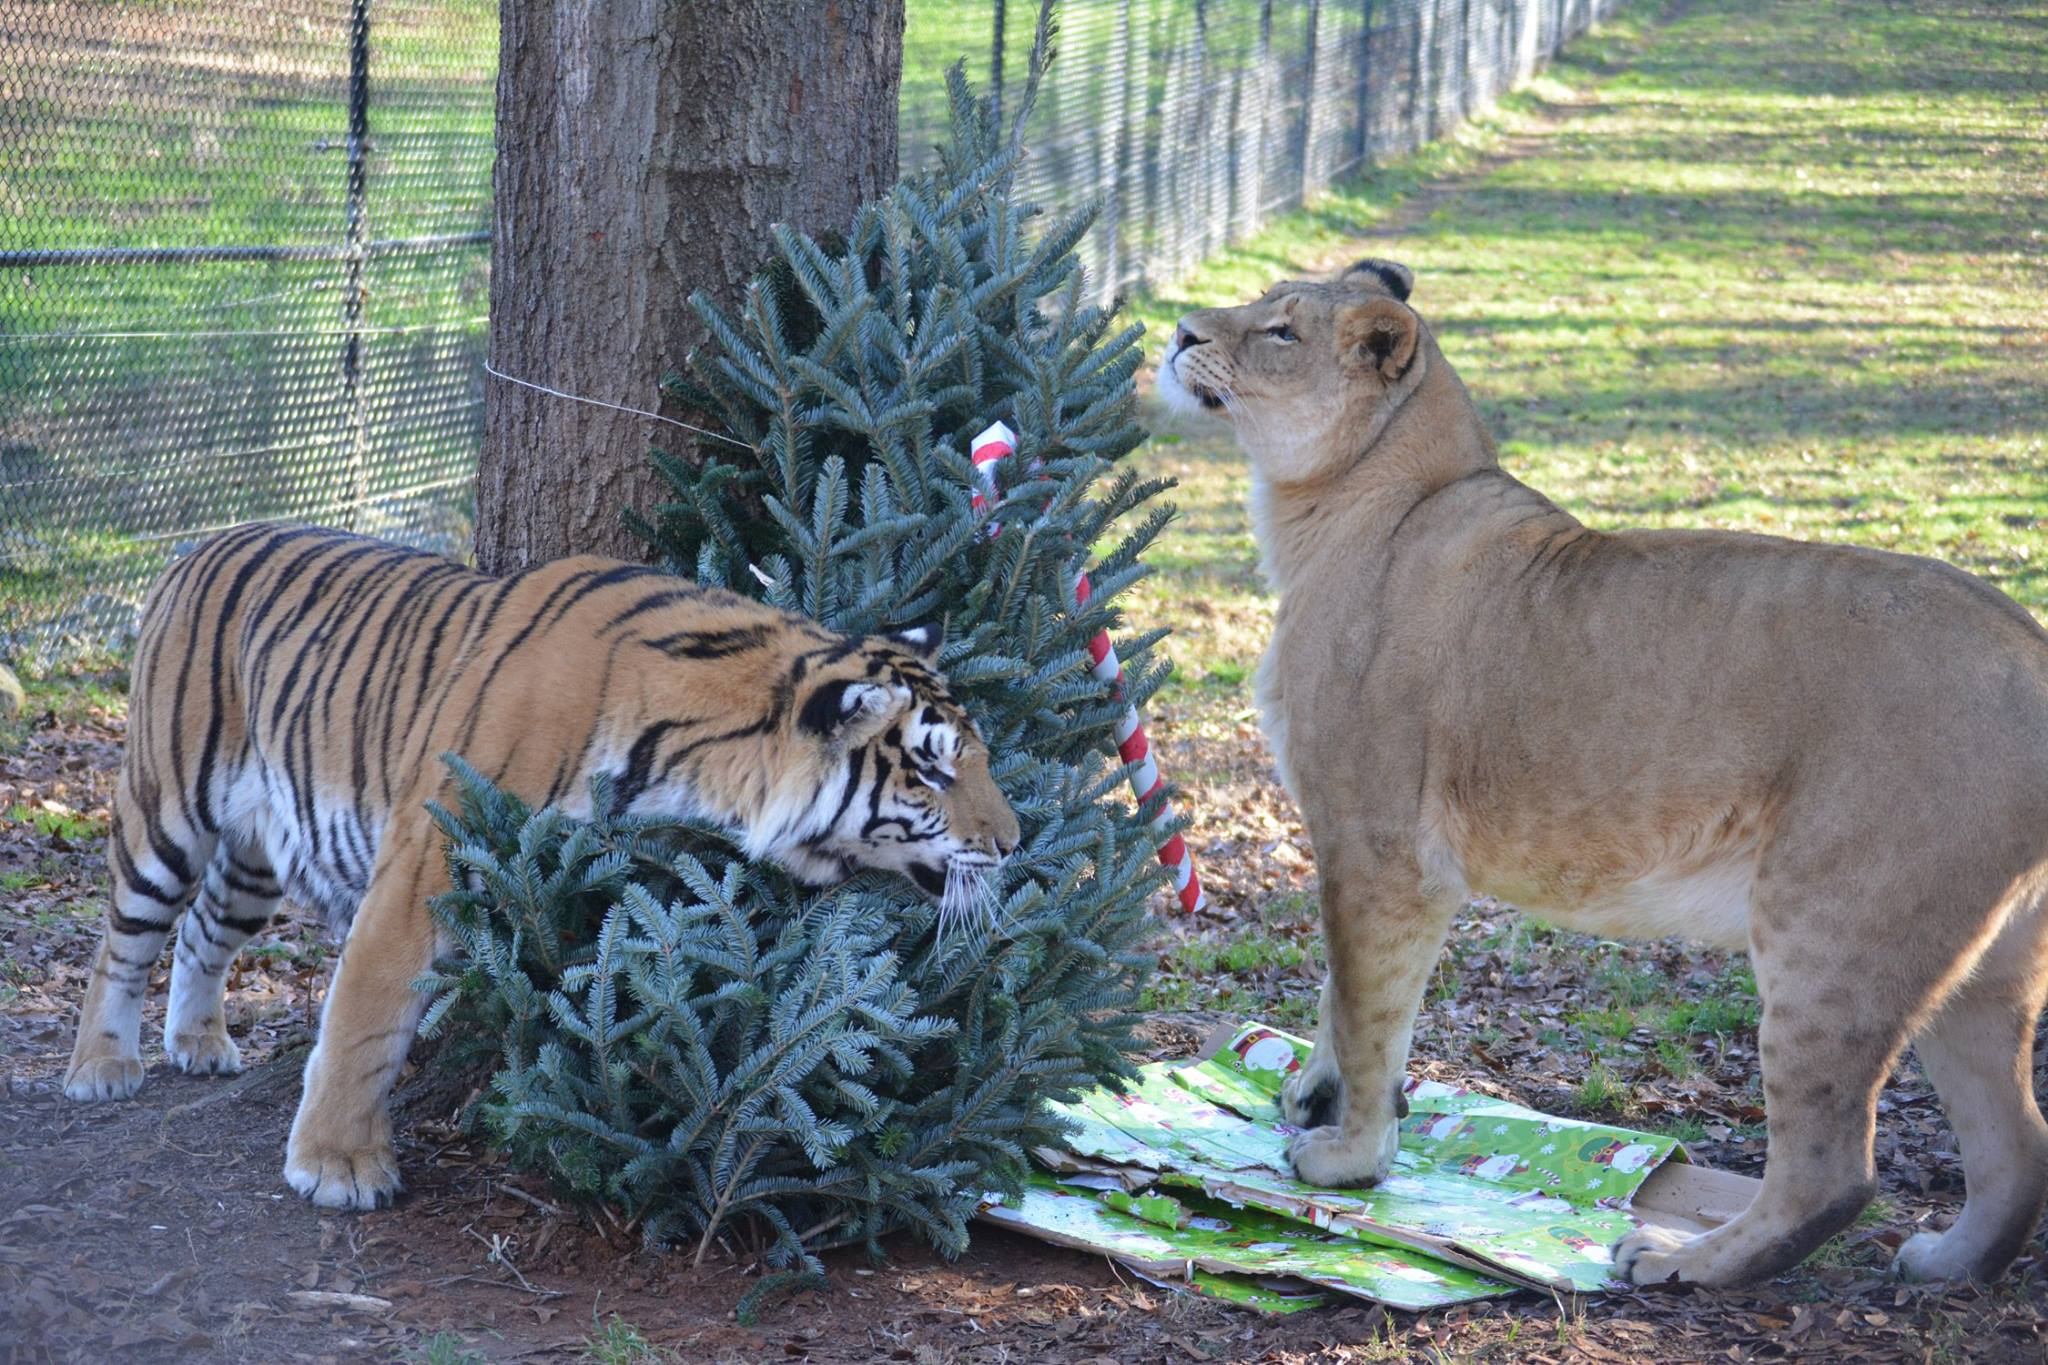 Libby and Tiger Lily Decorating for the Holidays at Noah's Ark Animal Sanctuary in Locust Grove, GA